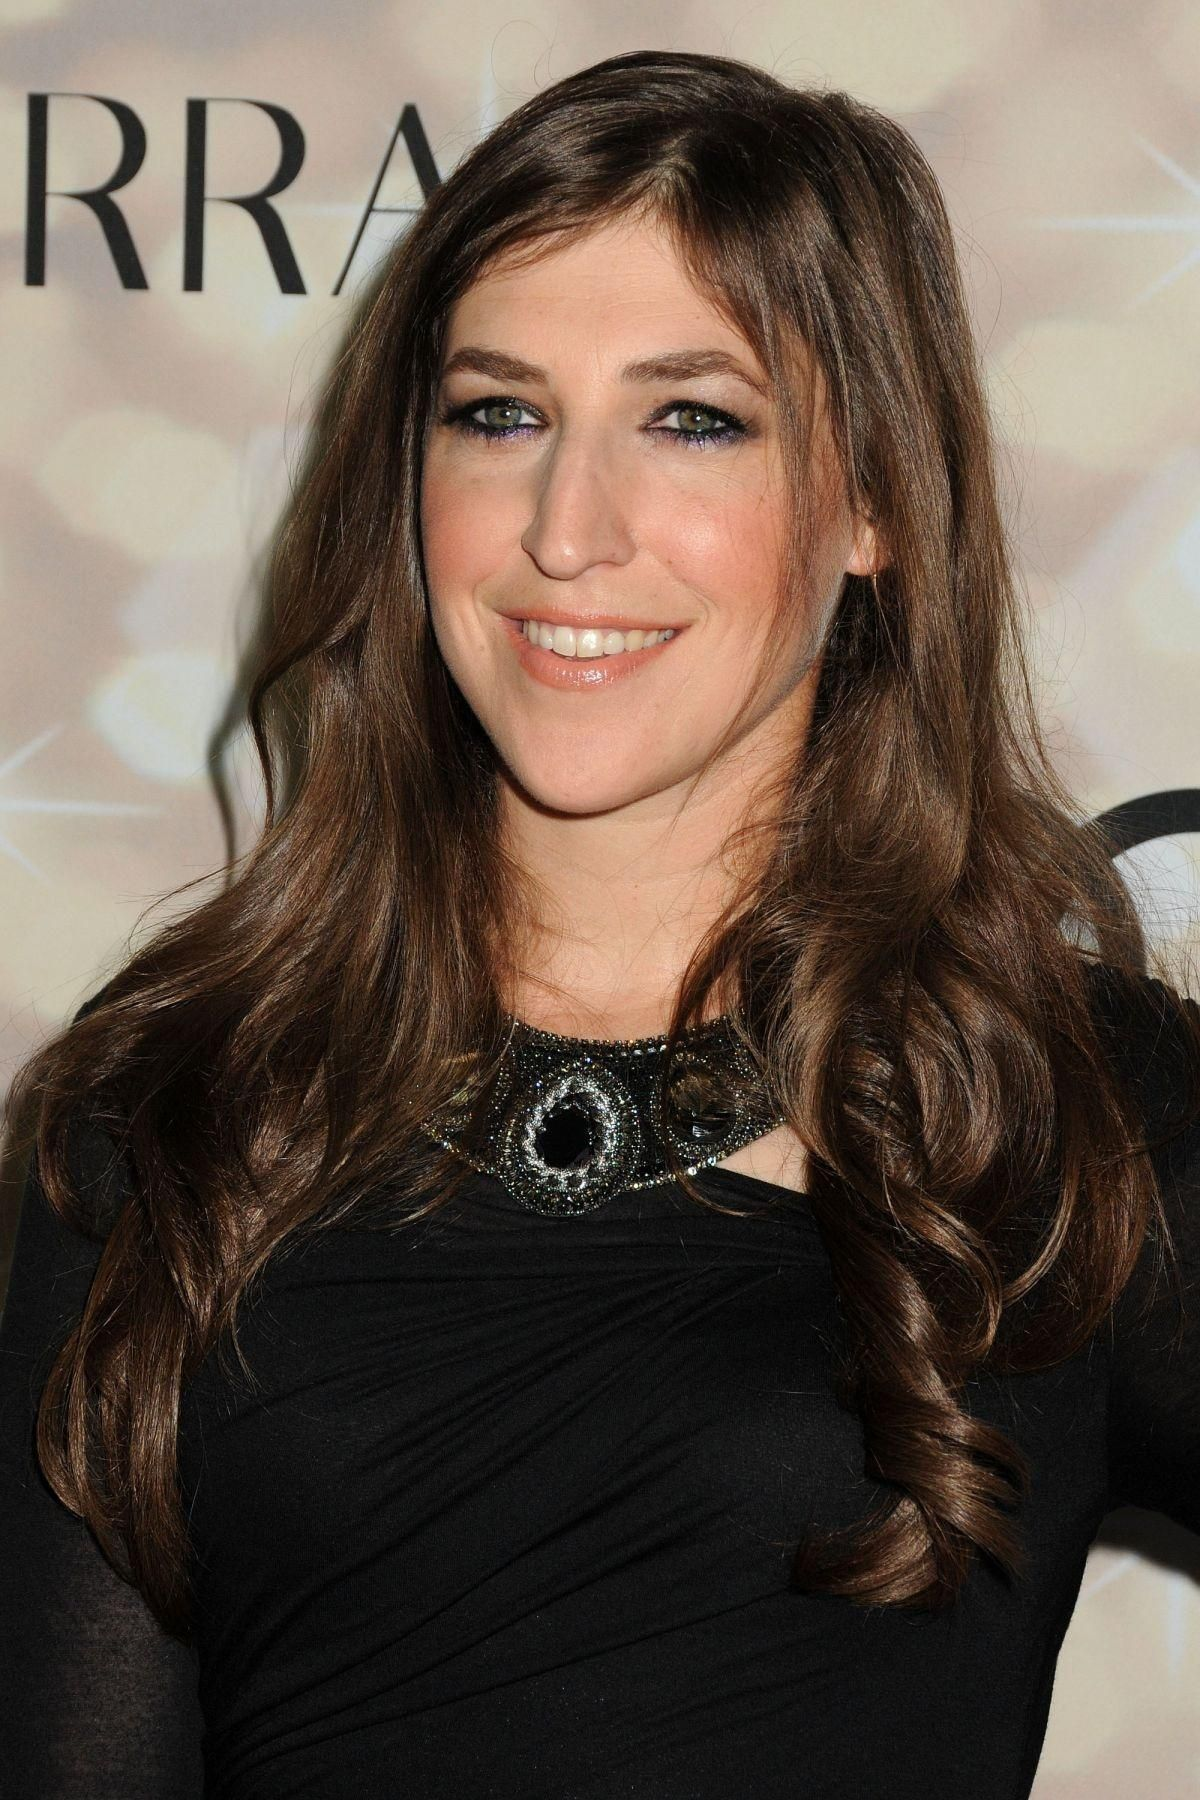 Image result for Mayim Bialik beautiful